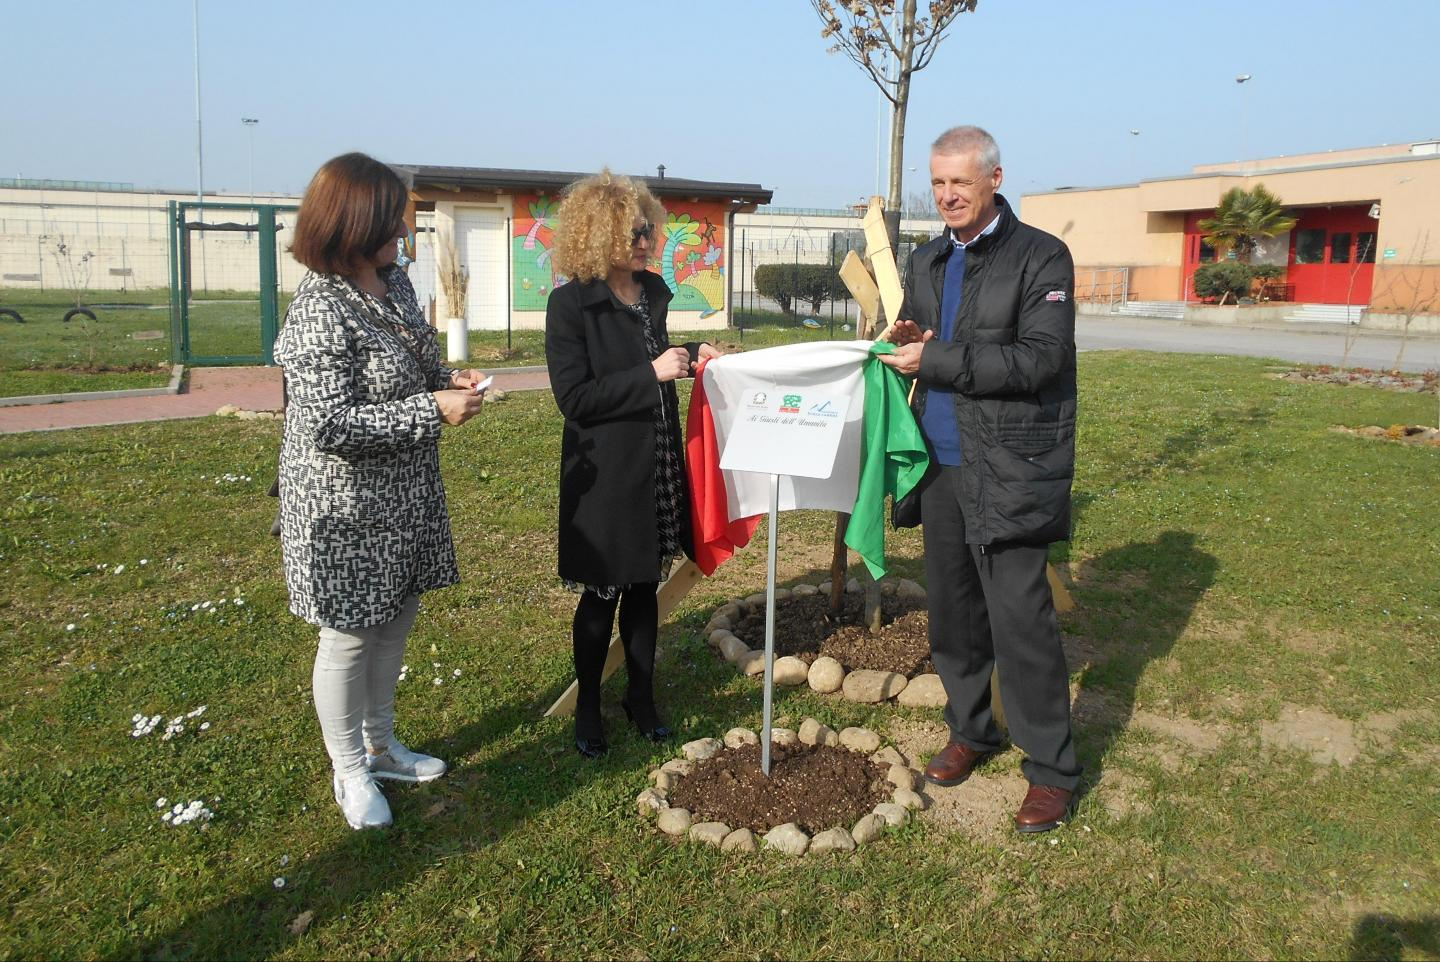 Unveiling of the plaque dedicated to Giorgio Perlasca